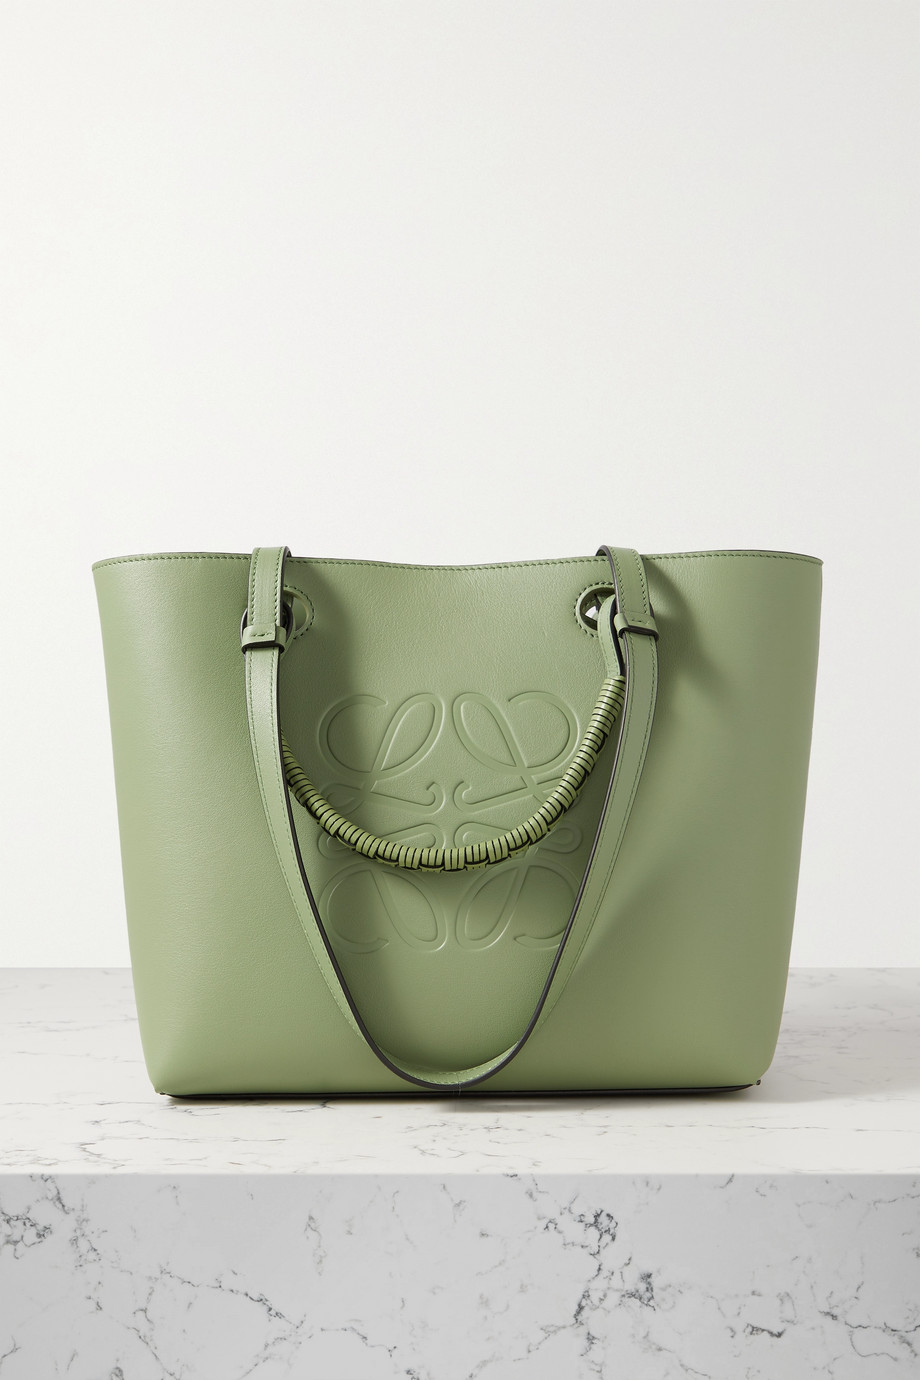 Loewe Anagram small debossed leather tote